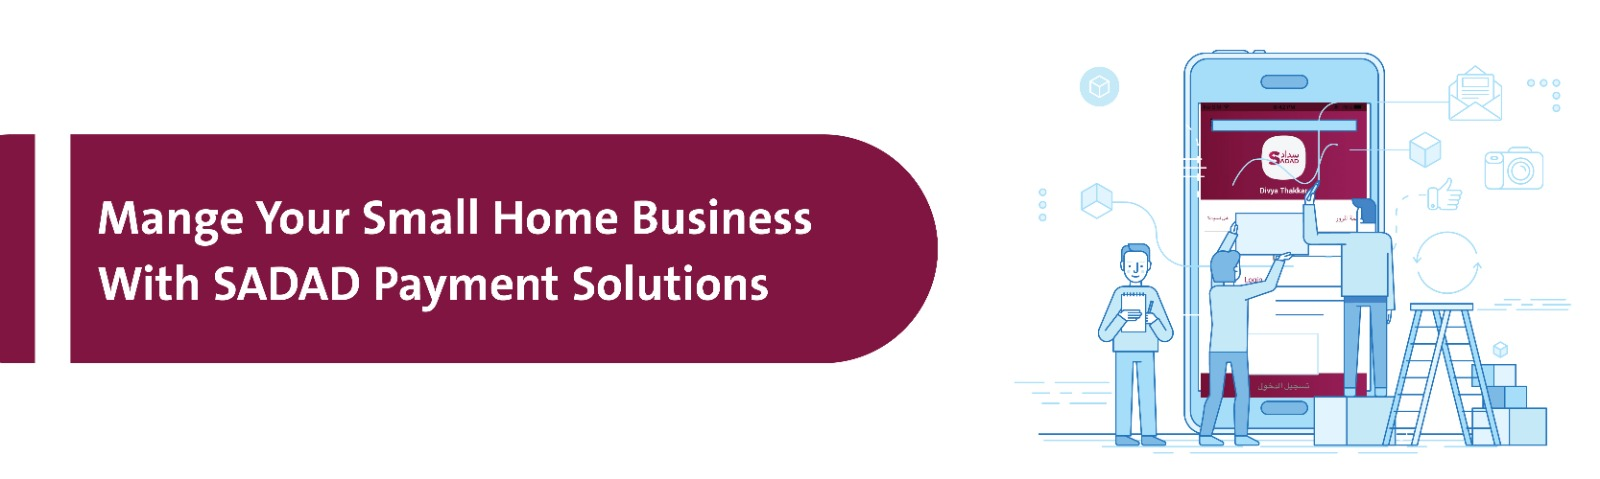 manage your small home business with sadad payment solutions - sadad qatar